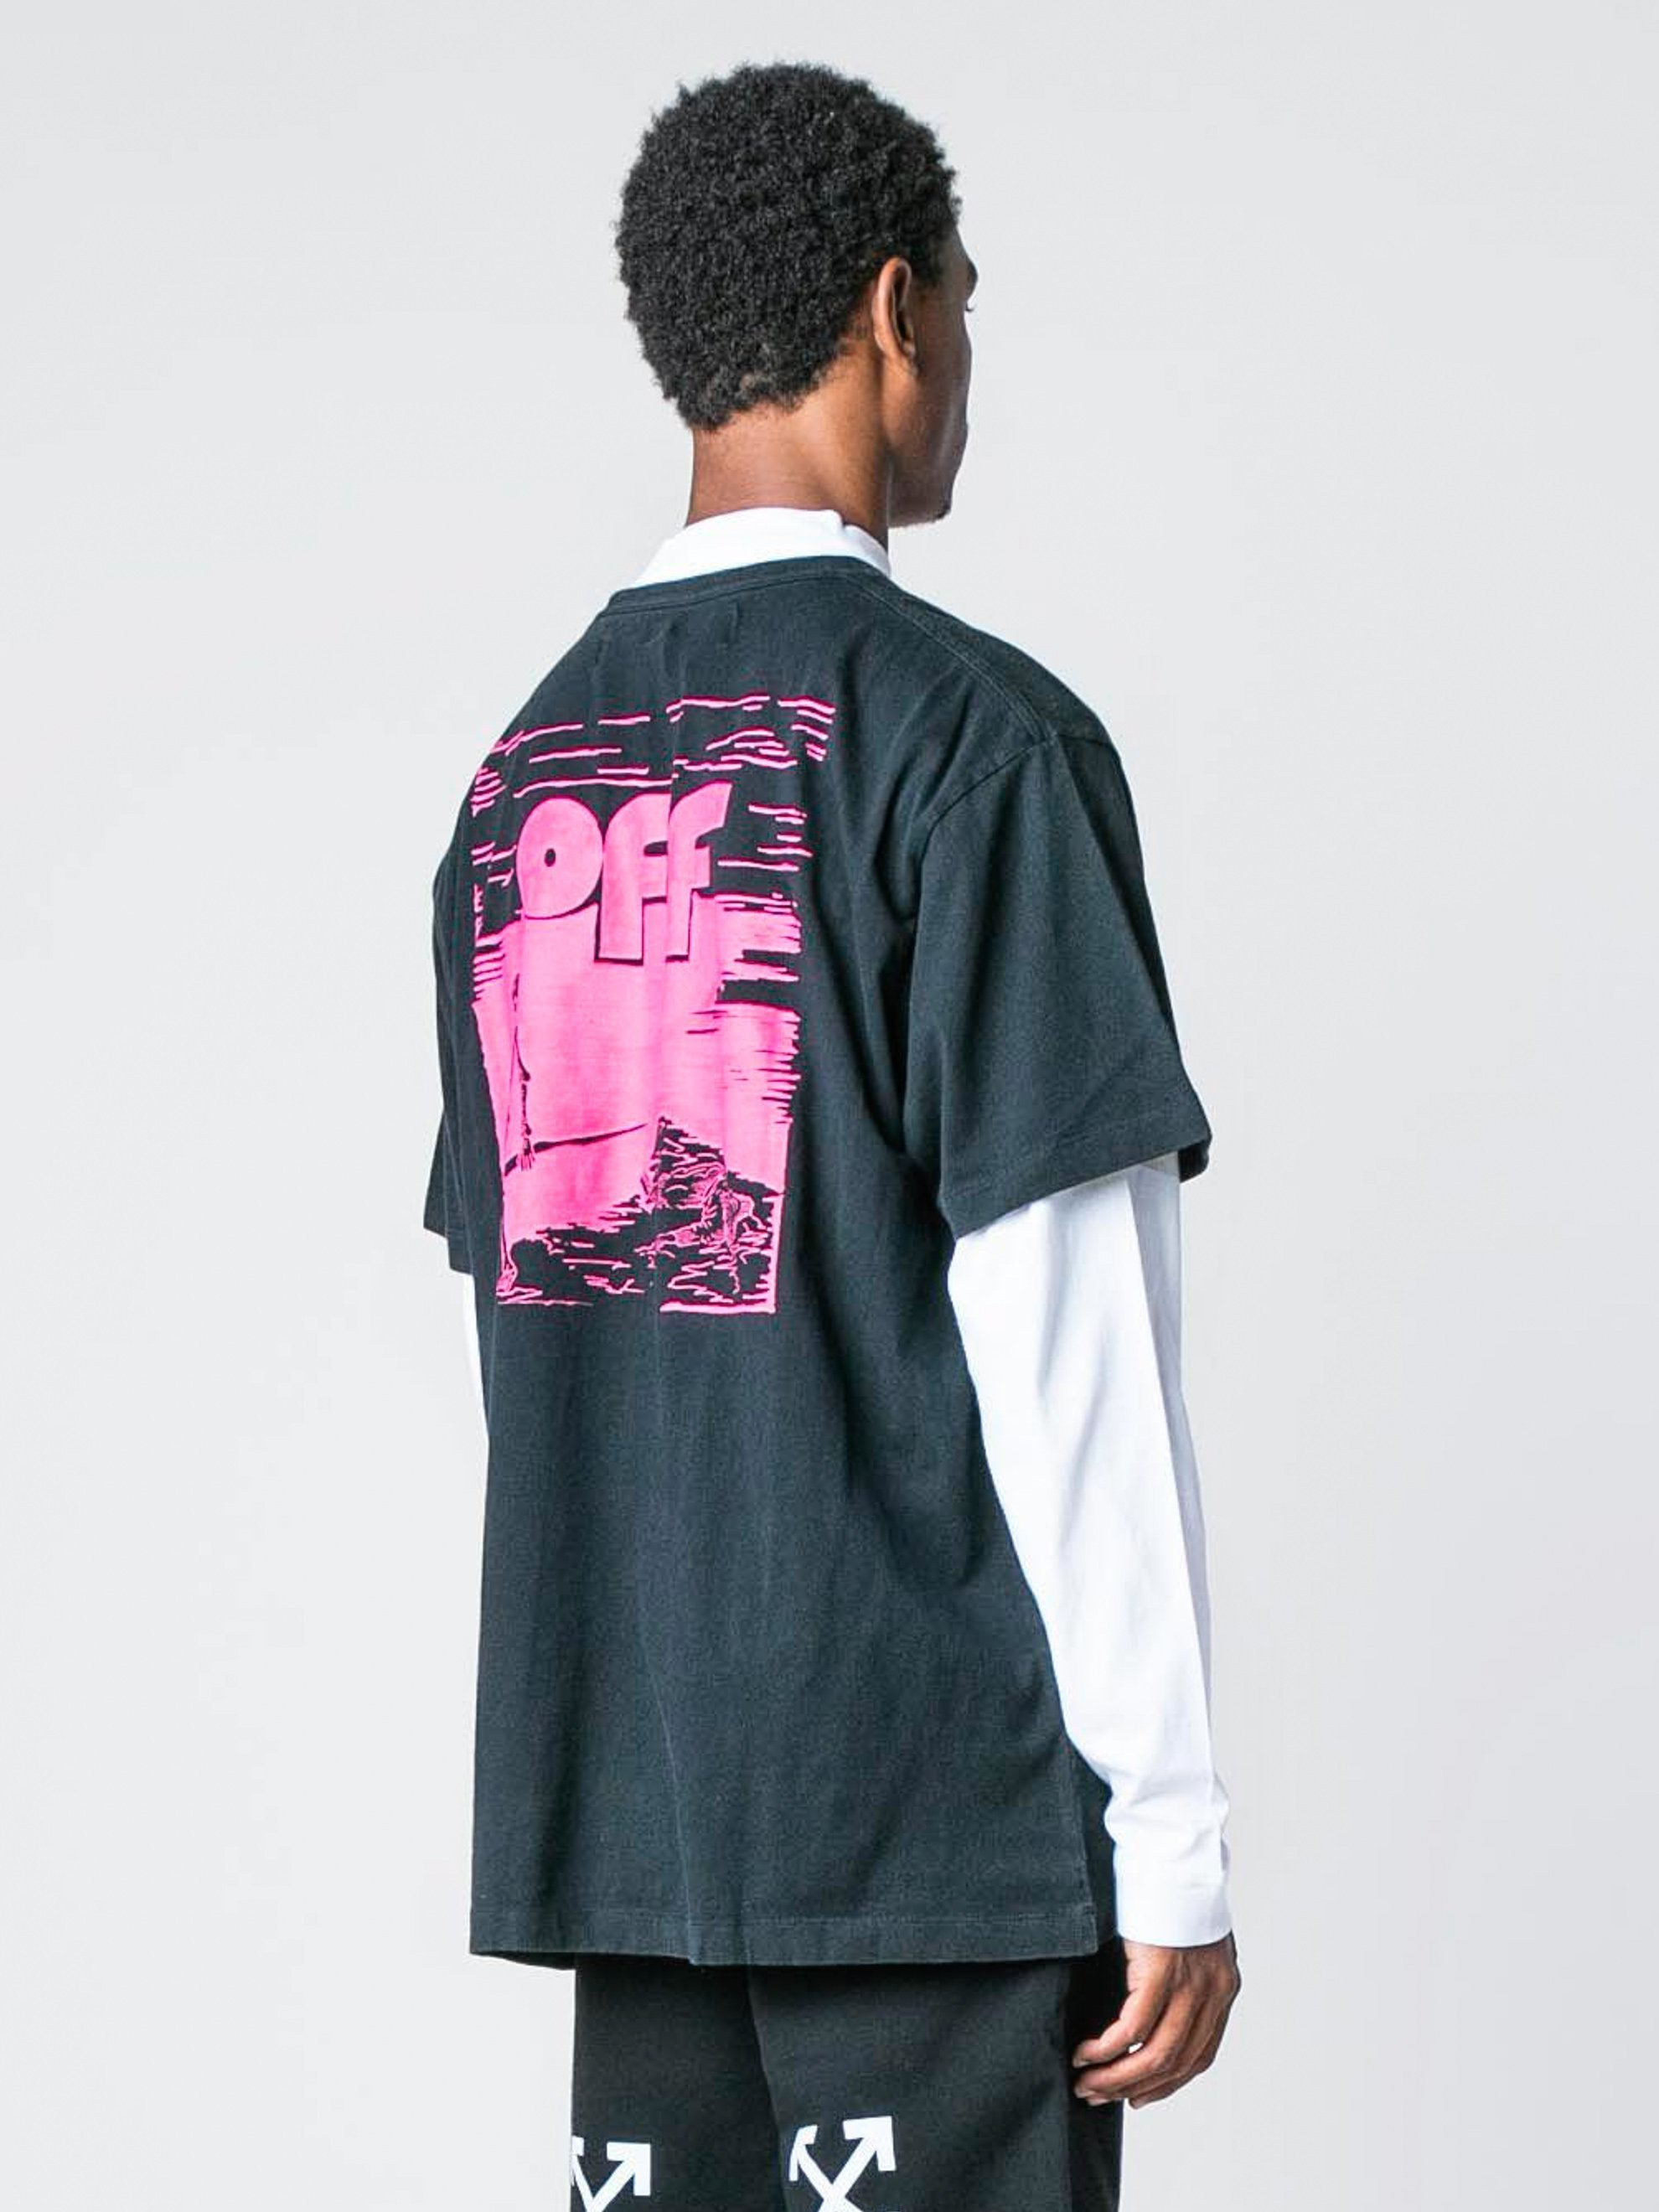 Black / Fuchsia Skull Floating S/S Over T-Shirt 5